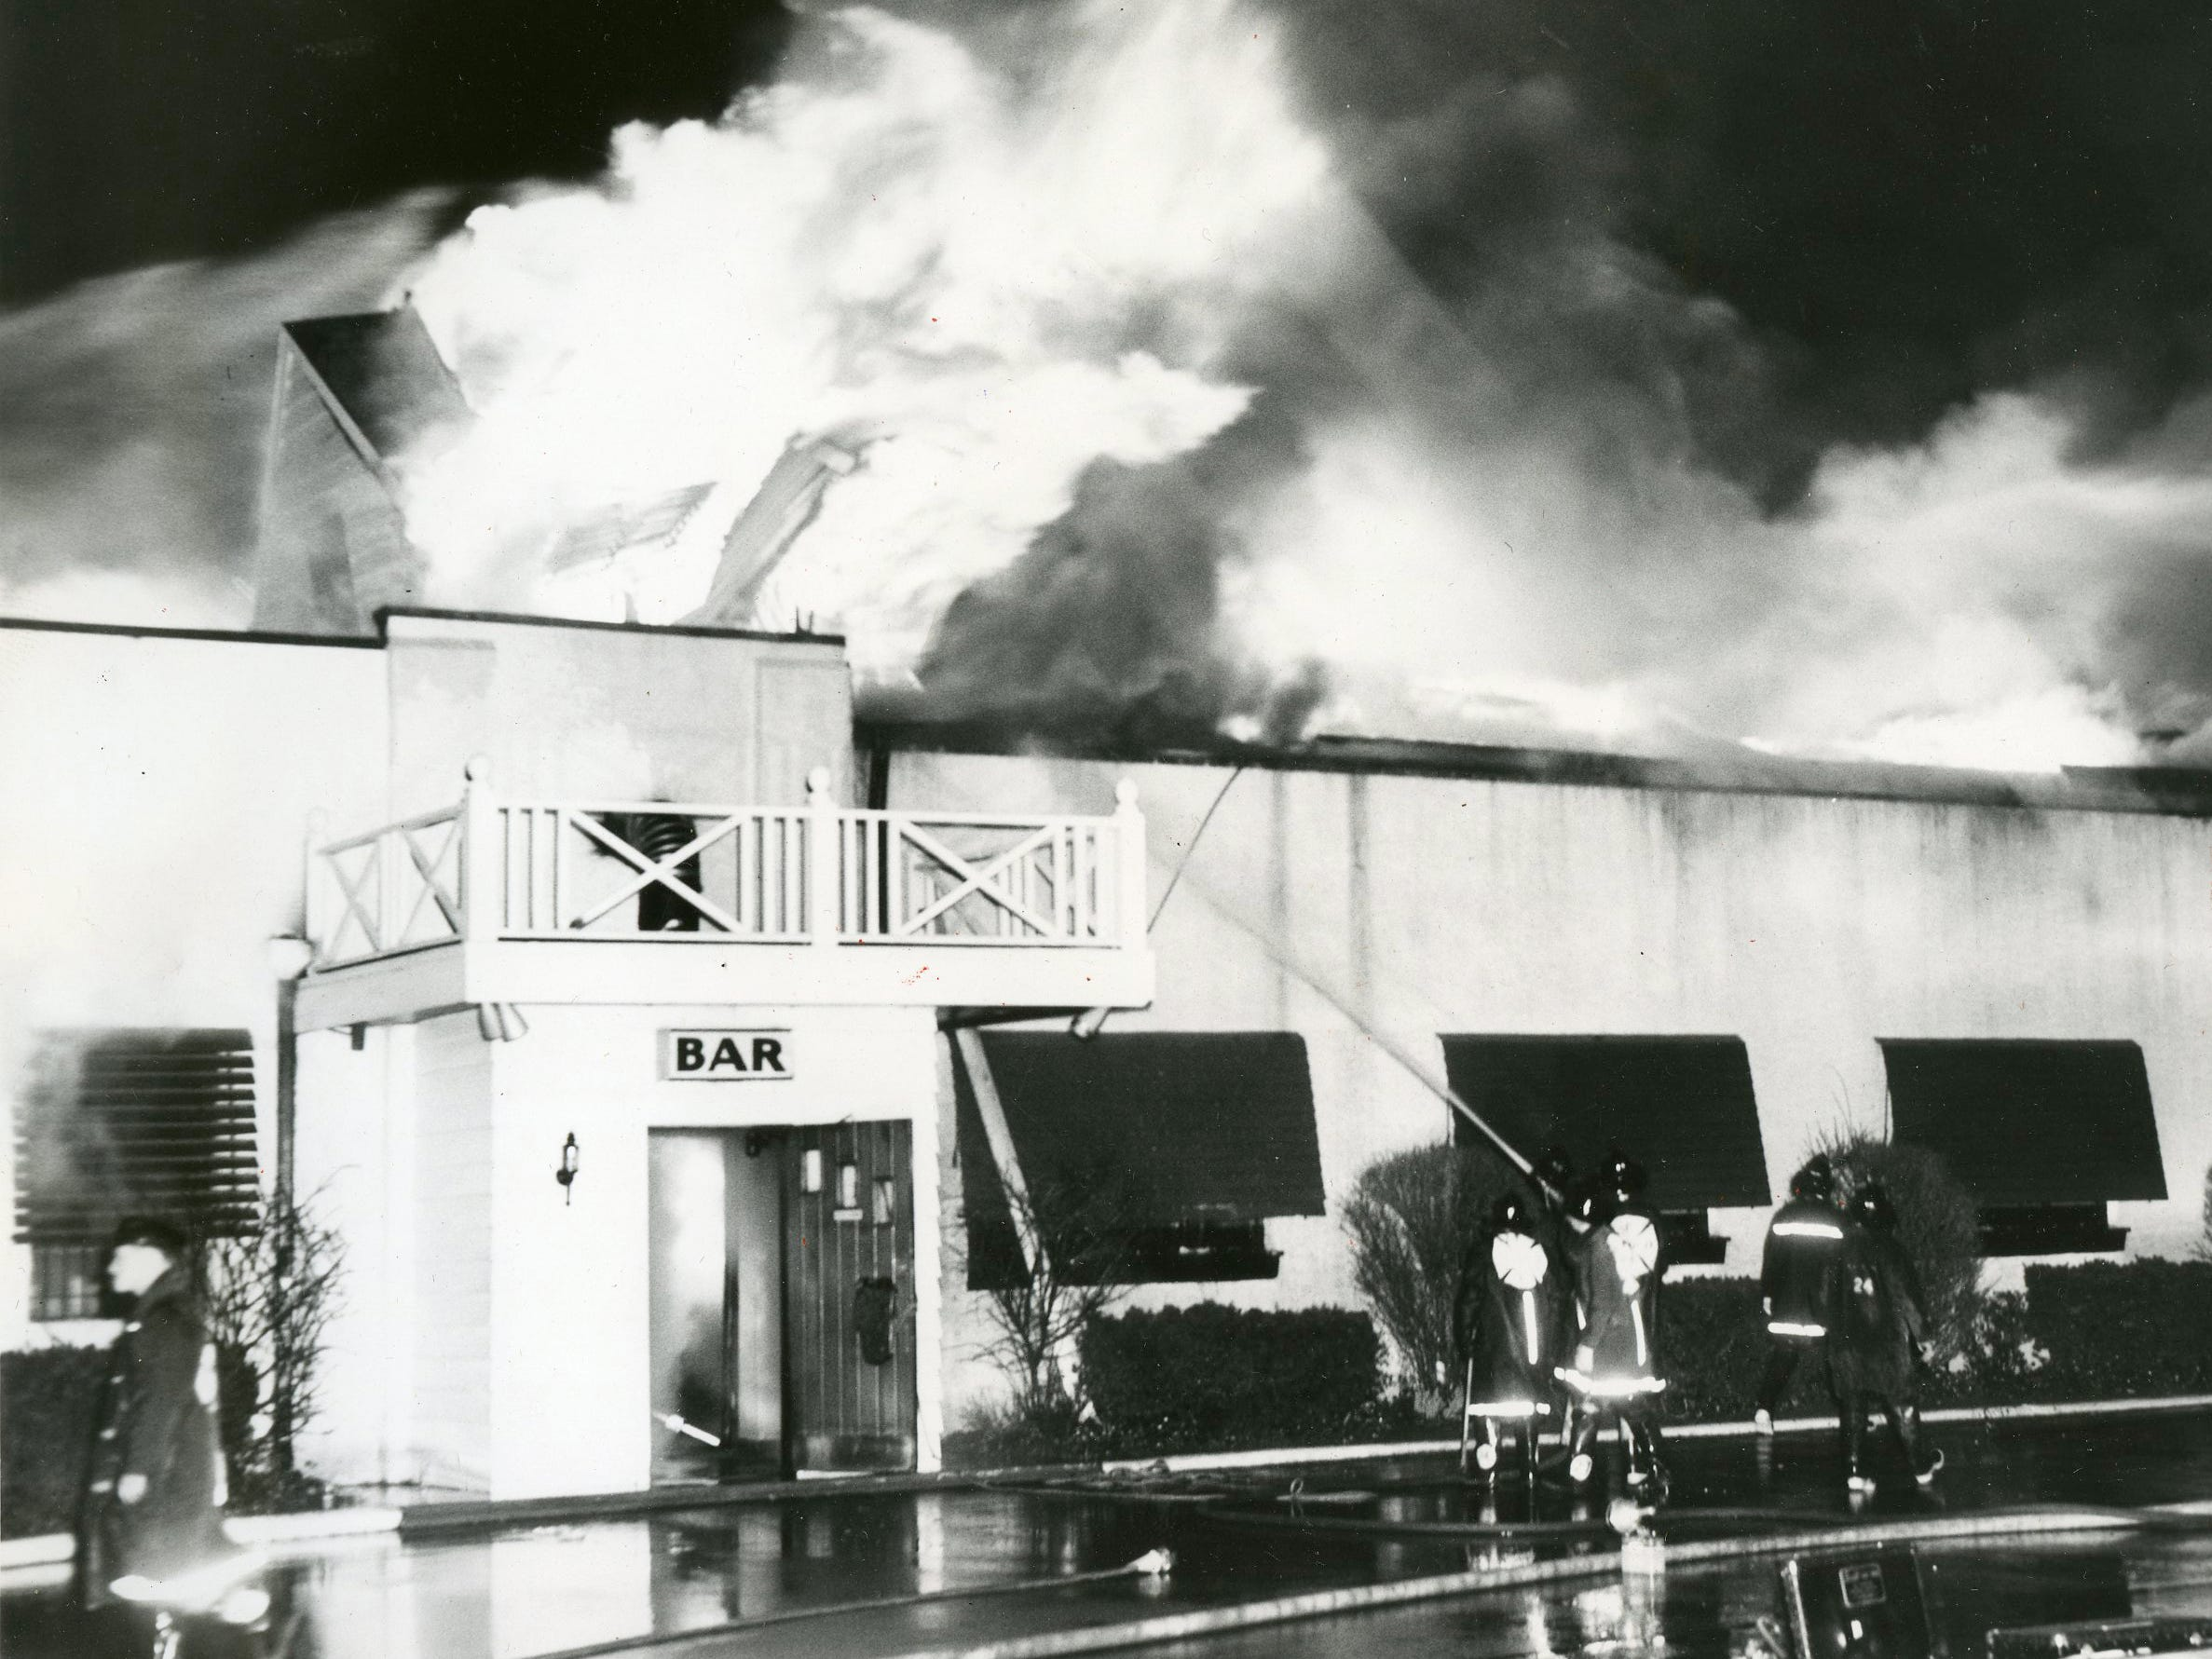 A 1962 fire  destroyed the original building of The Pub in Pennsauken.   Seven hundred customers filed out of the restaurant after the manager announced danger.  No one was injured but one fireman was treated for smoke inhalation.    The Pub was later rebuilt on the same site.